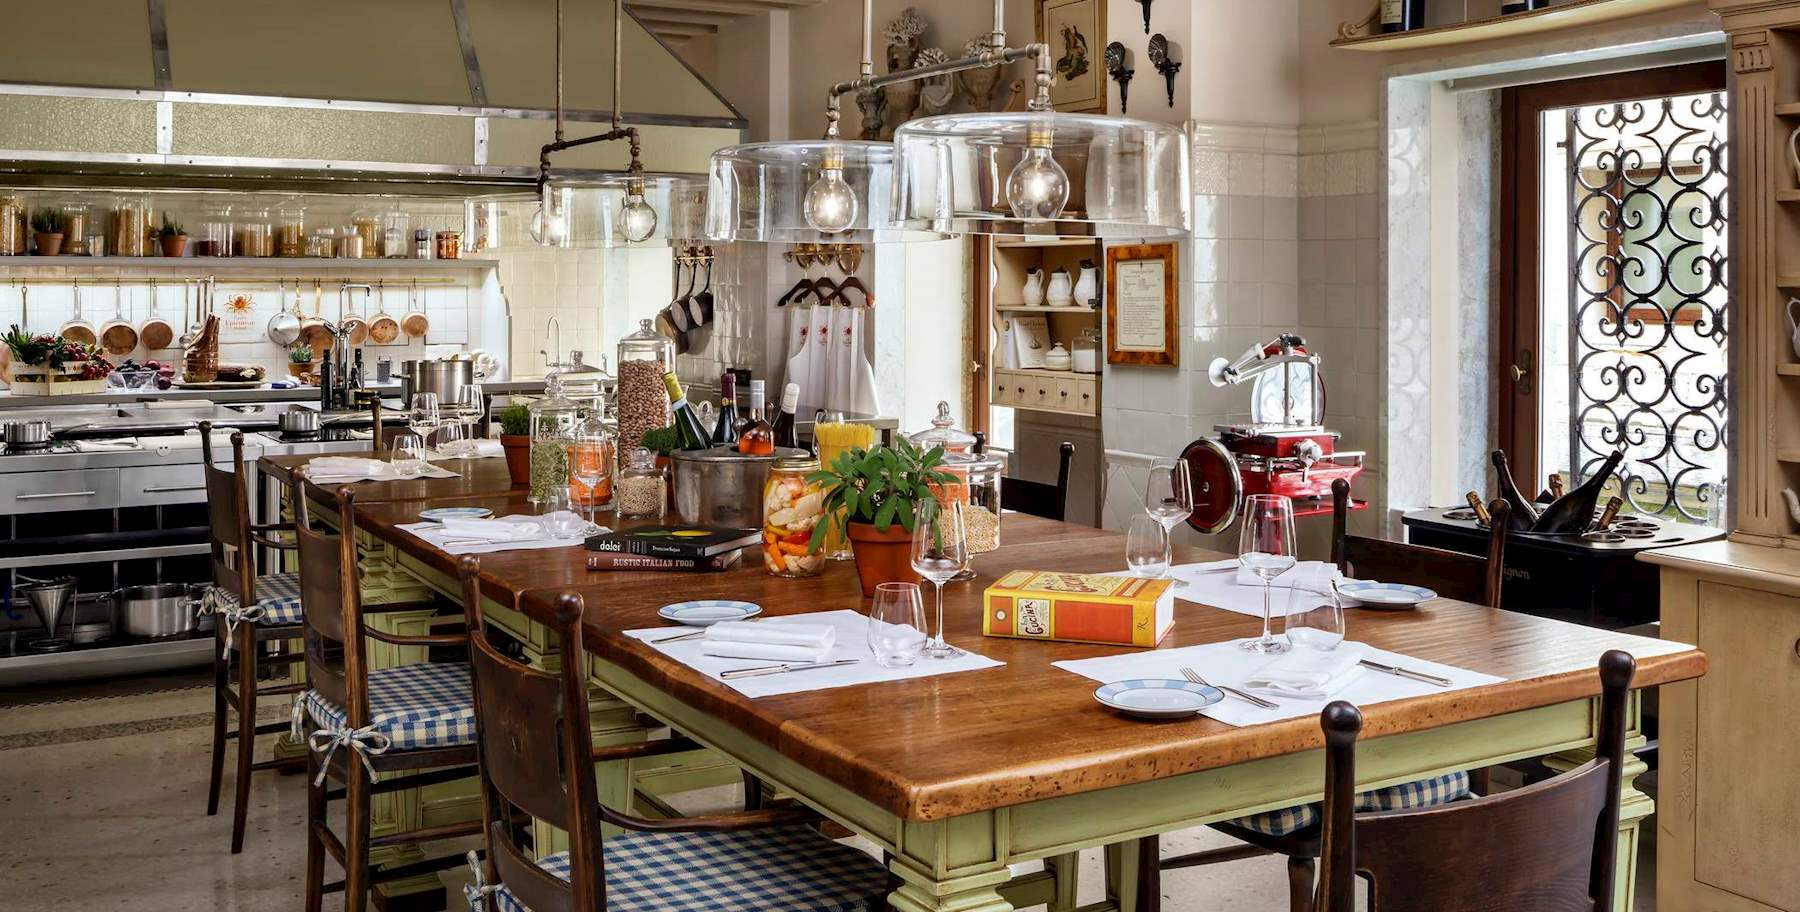 Cucina Jw Marriott Venice The Gritti Epicurean School Cooking Classes In Venice Cooking